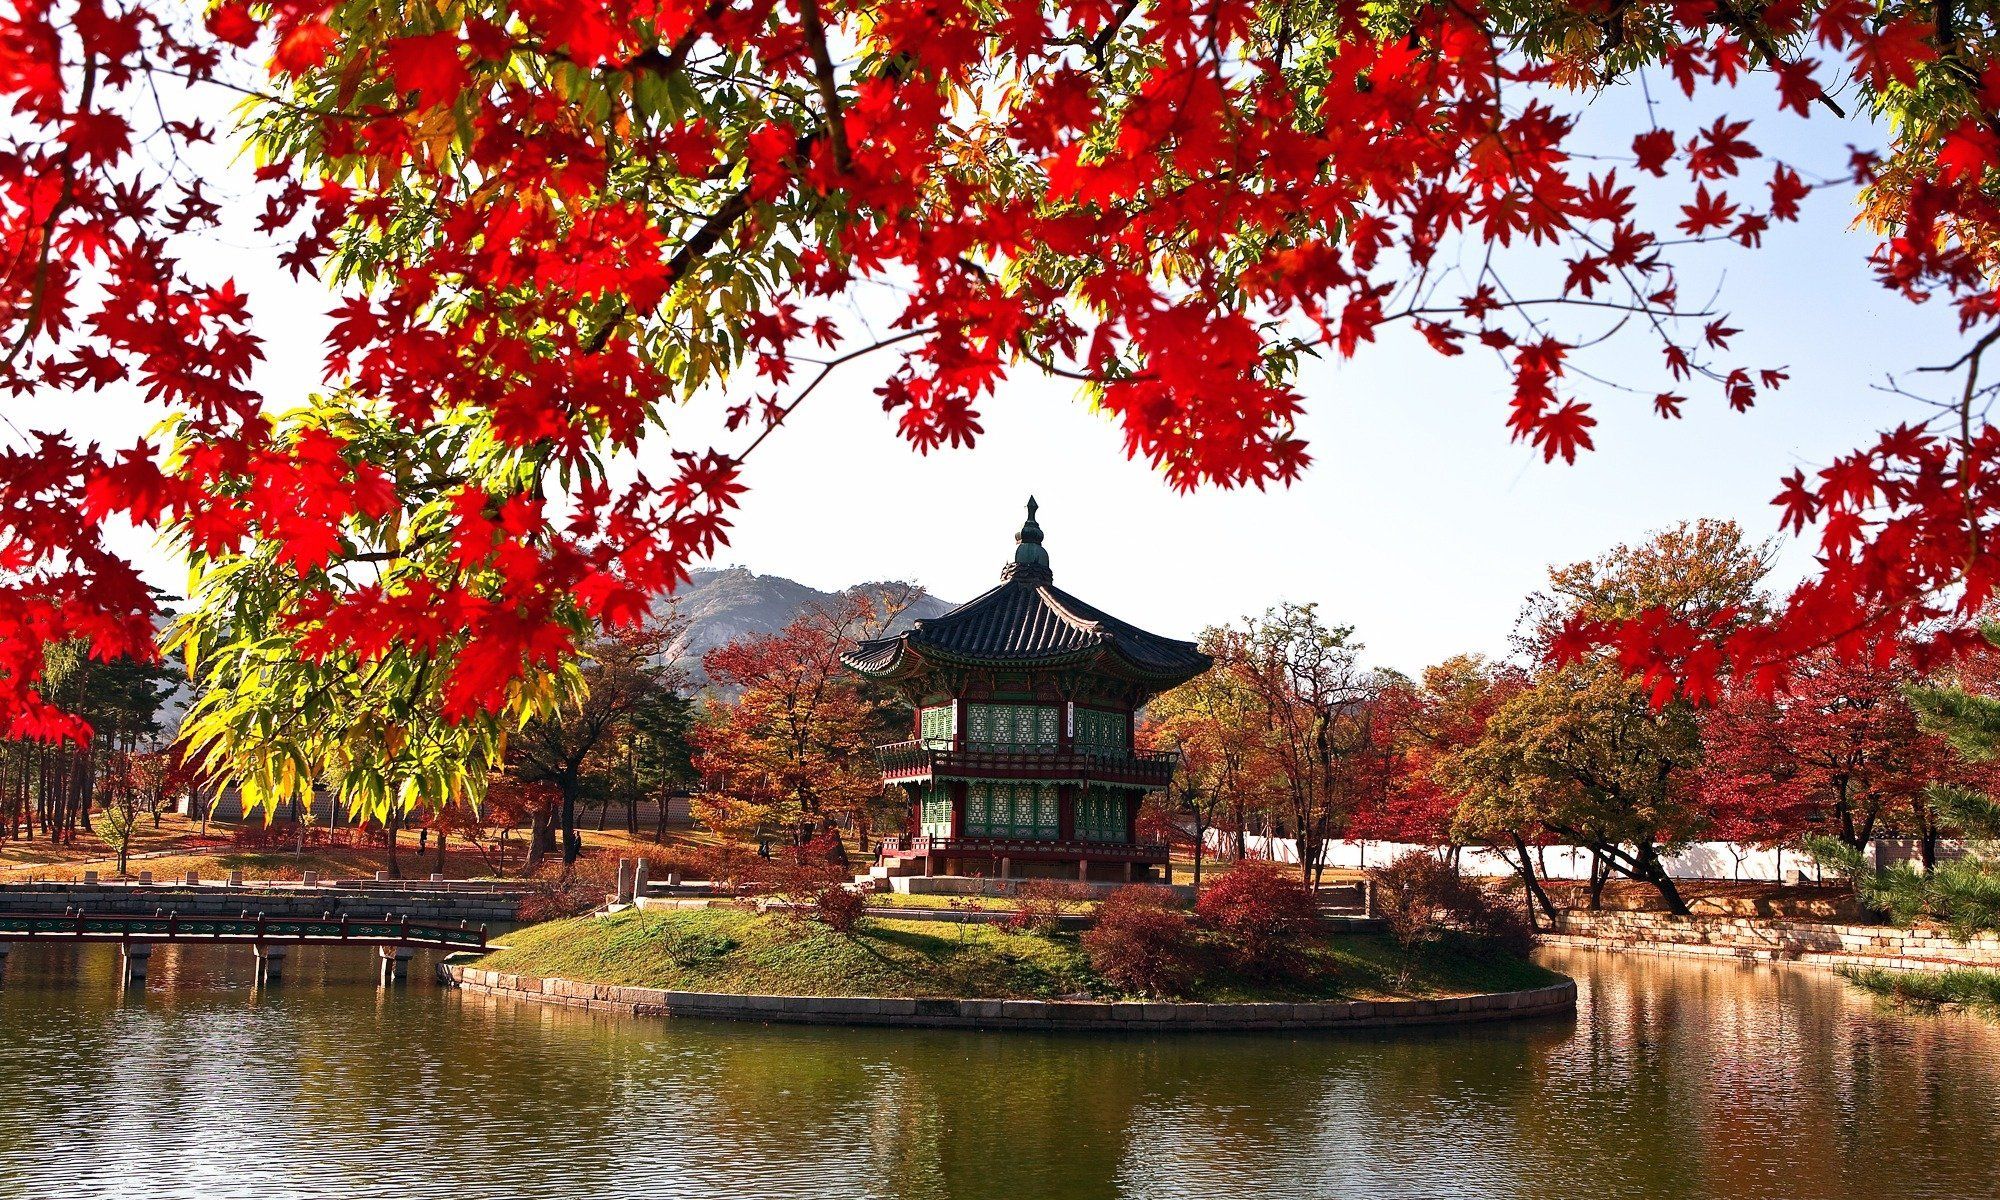 Autumn in South Korea 2018 – the country's best spots for ... on show me a map of scotland, show me a map of the florida keys, show me a map of georgia, show me a map of northern europe, show me a map of the mediterranean sea, show me a map of japan, show me a map of central asia, show me a map of the philippines, show me a map of the caribbean, show me a map of brazil, show me a map of the us,